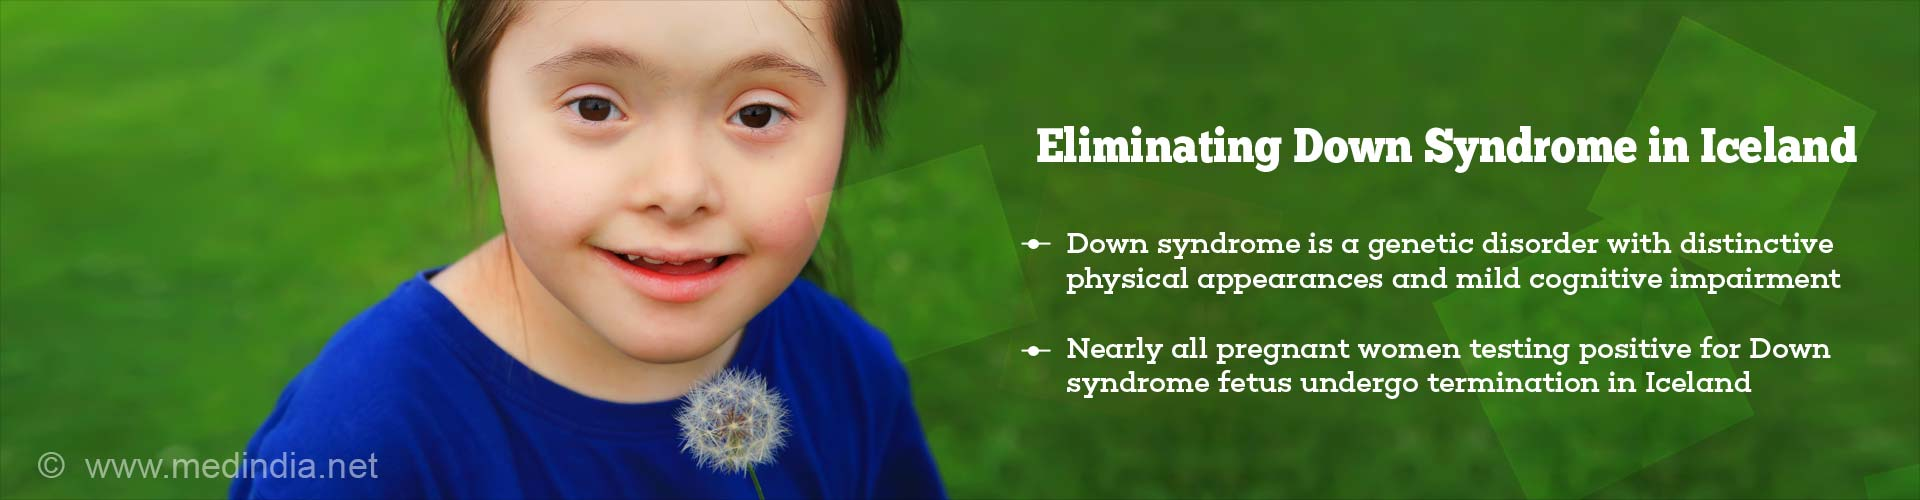 Eliminating Down Syndrome in Iceland